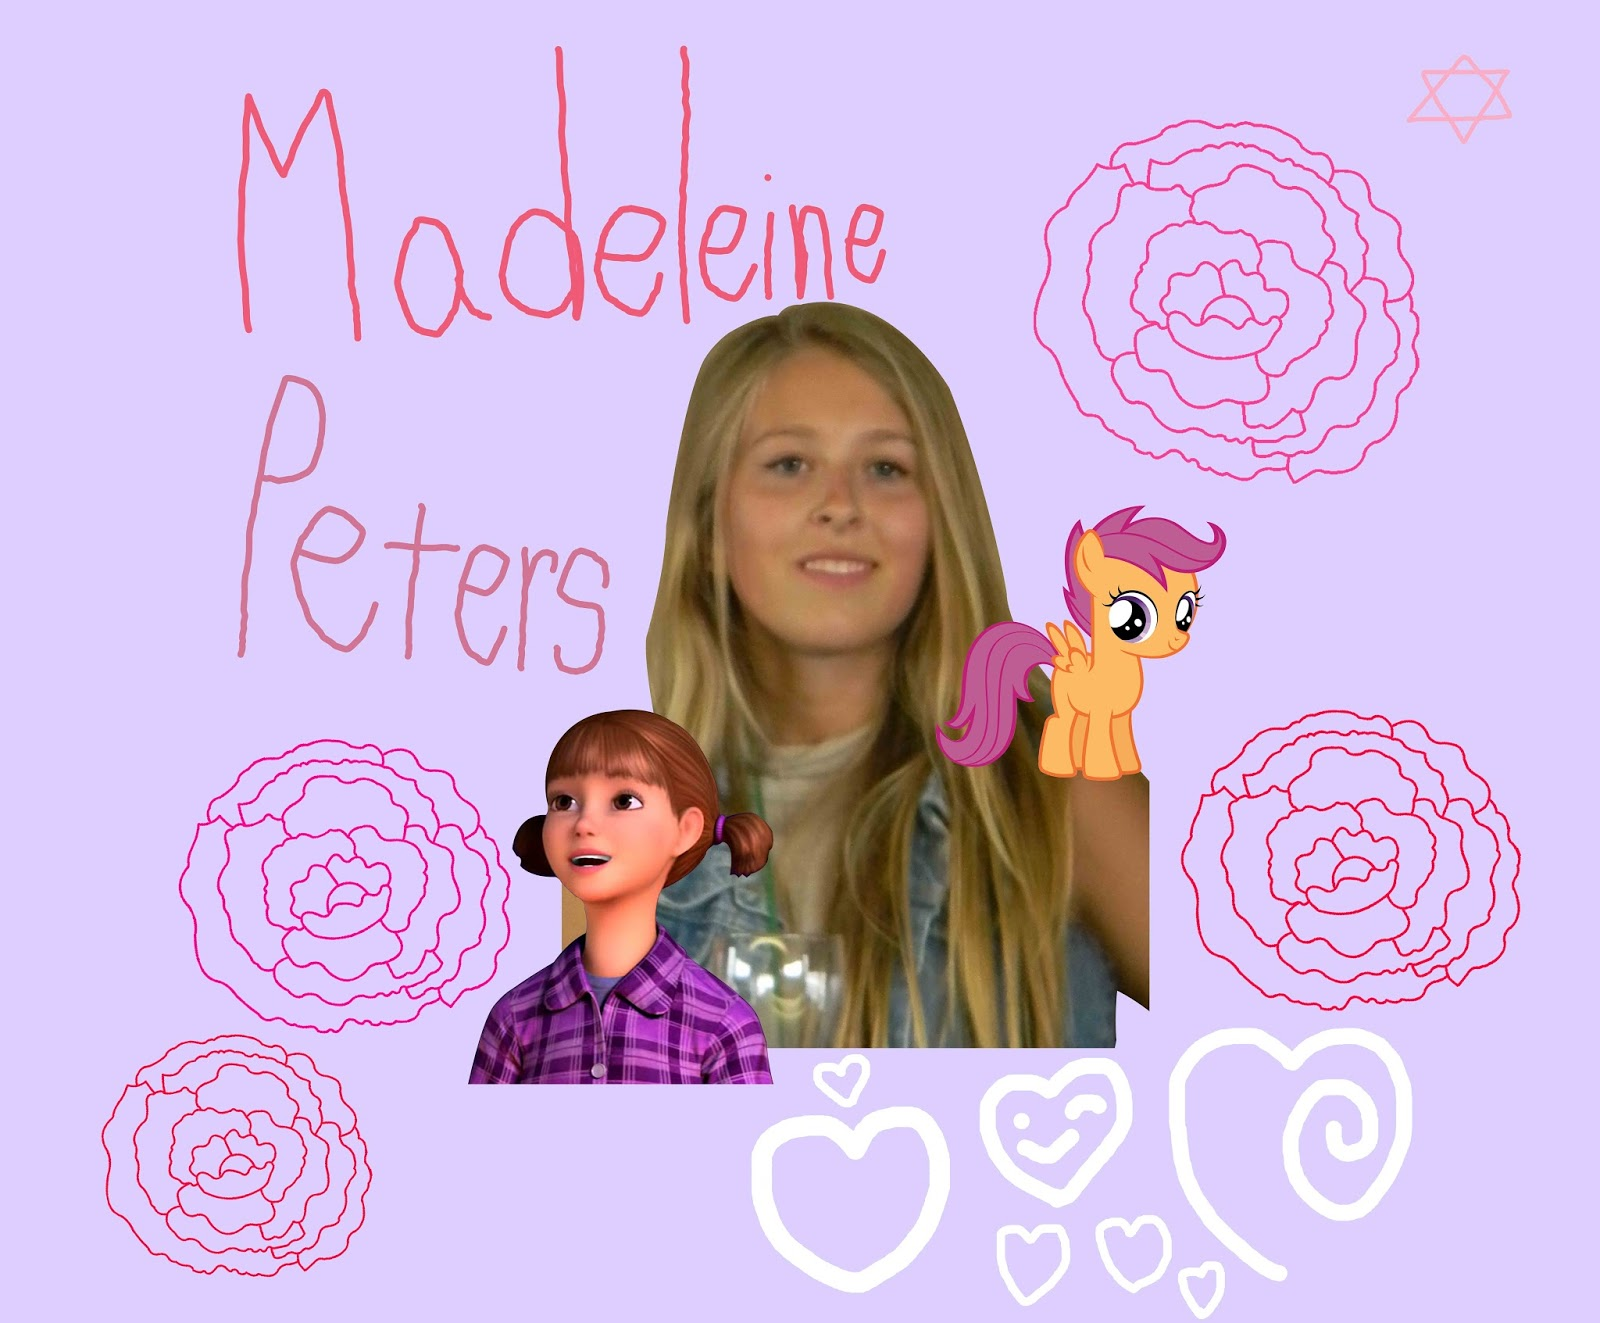 Rational Spirited Girl Madeleine Peters Последние твиты от scootaloo (@mlp_scoots). rational spirited girl madeleine peters